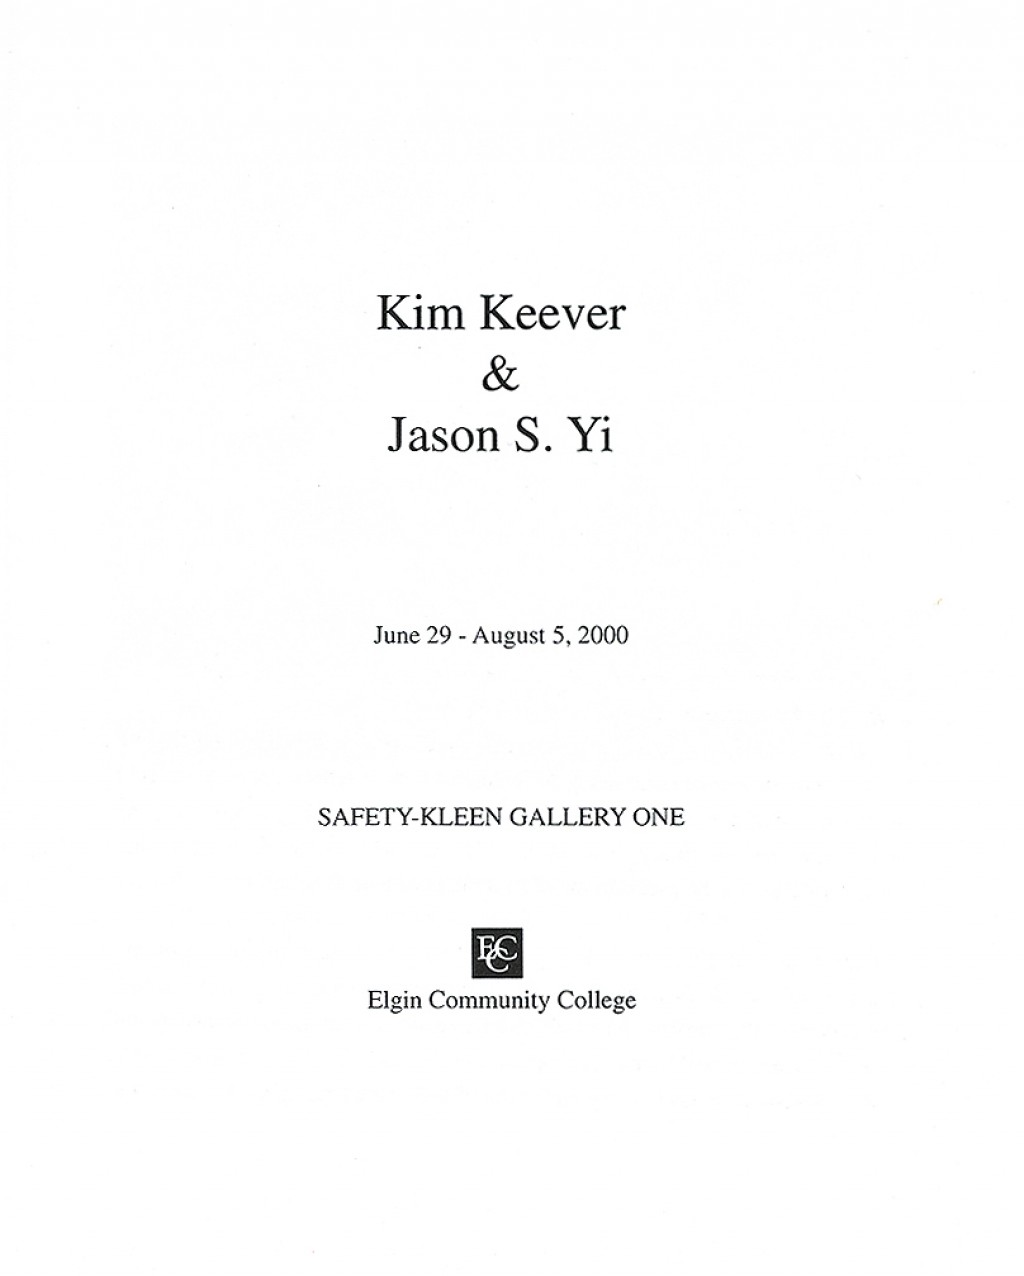 006 Jason Yi Catalog Title Page How To Do Cover For An Essay Best A Make On Microsoft Word Chicago Works Cited In Mla Format Large